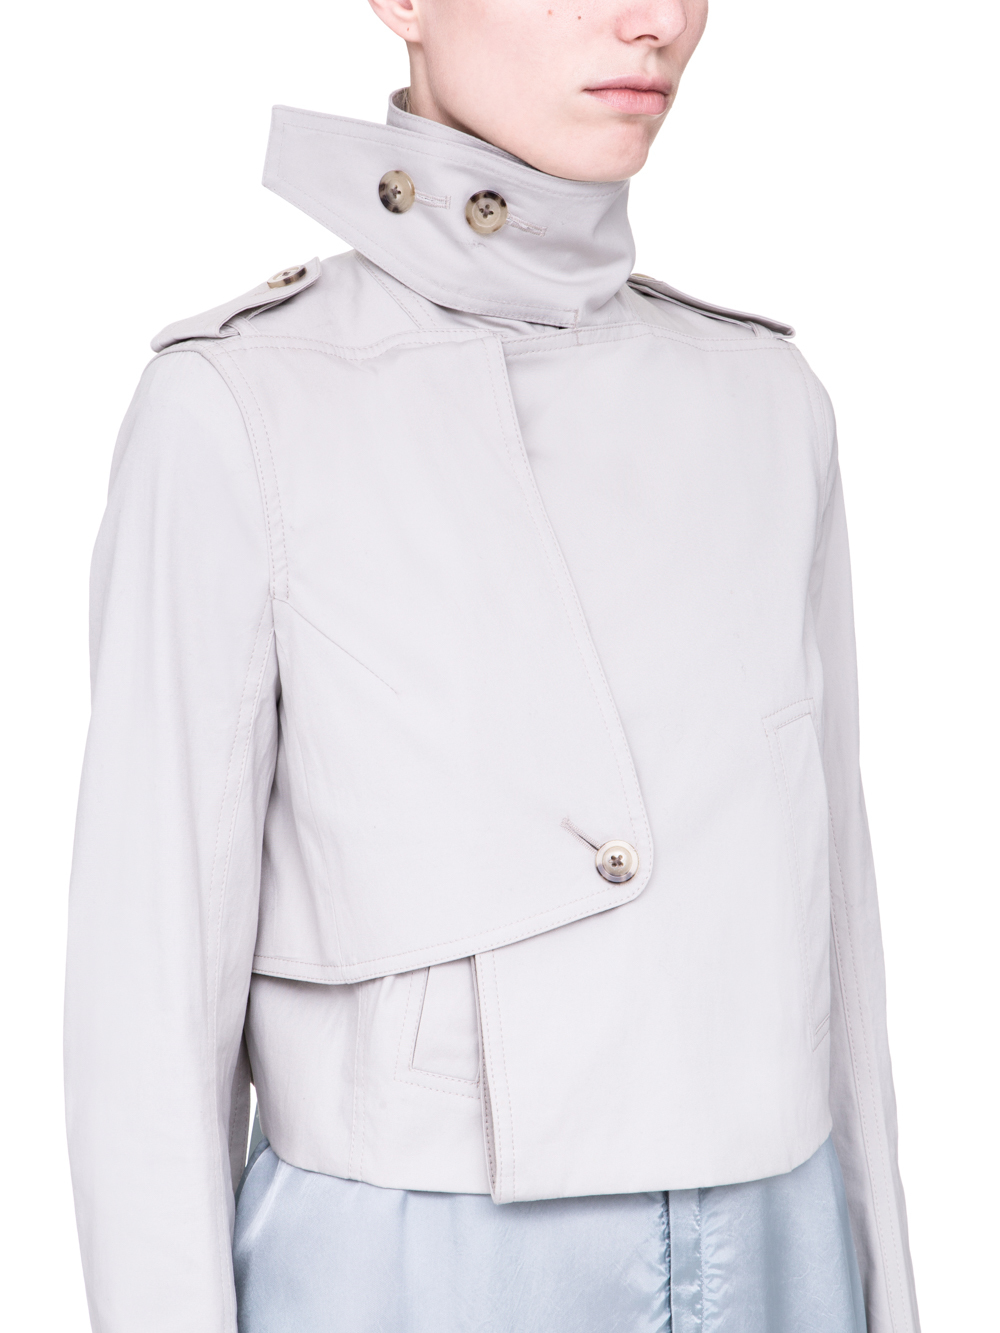 RICK OWENS SS19 BABEL SHORT TRENCH IN OYSTER LIGHT GREY